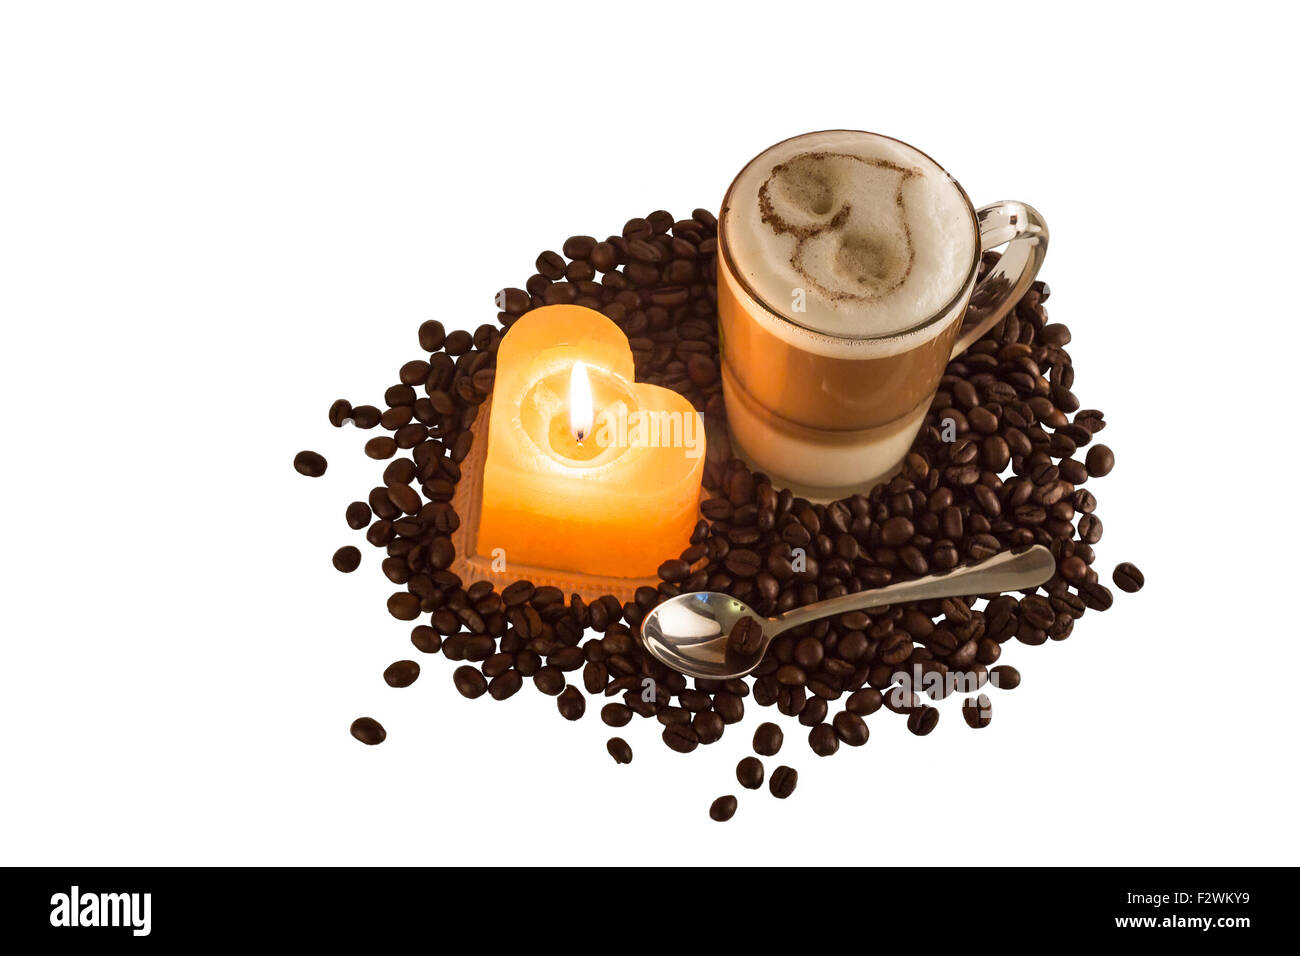 The morning warming heart of warmly fragrant coffee. - Stock Image